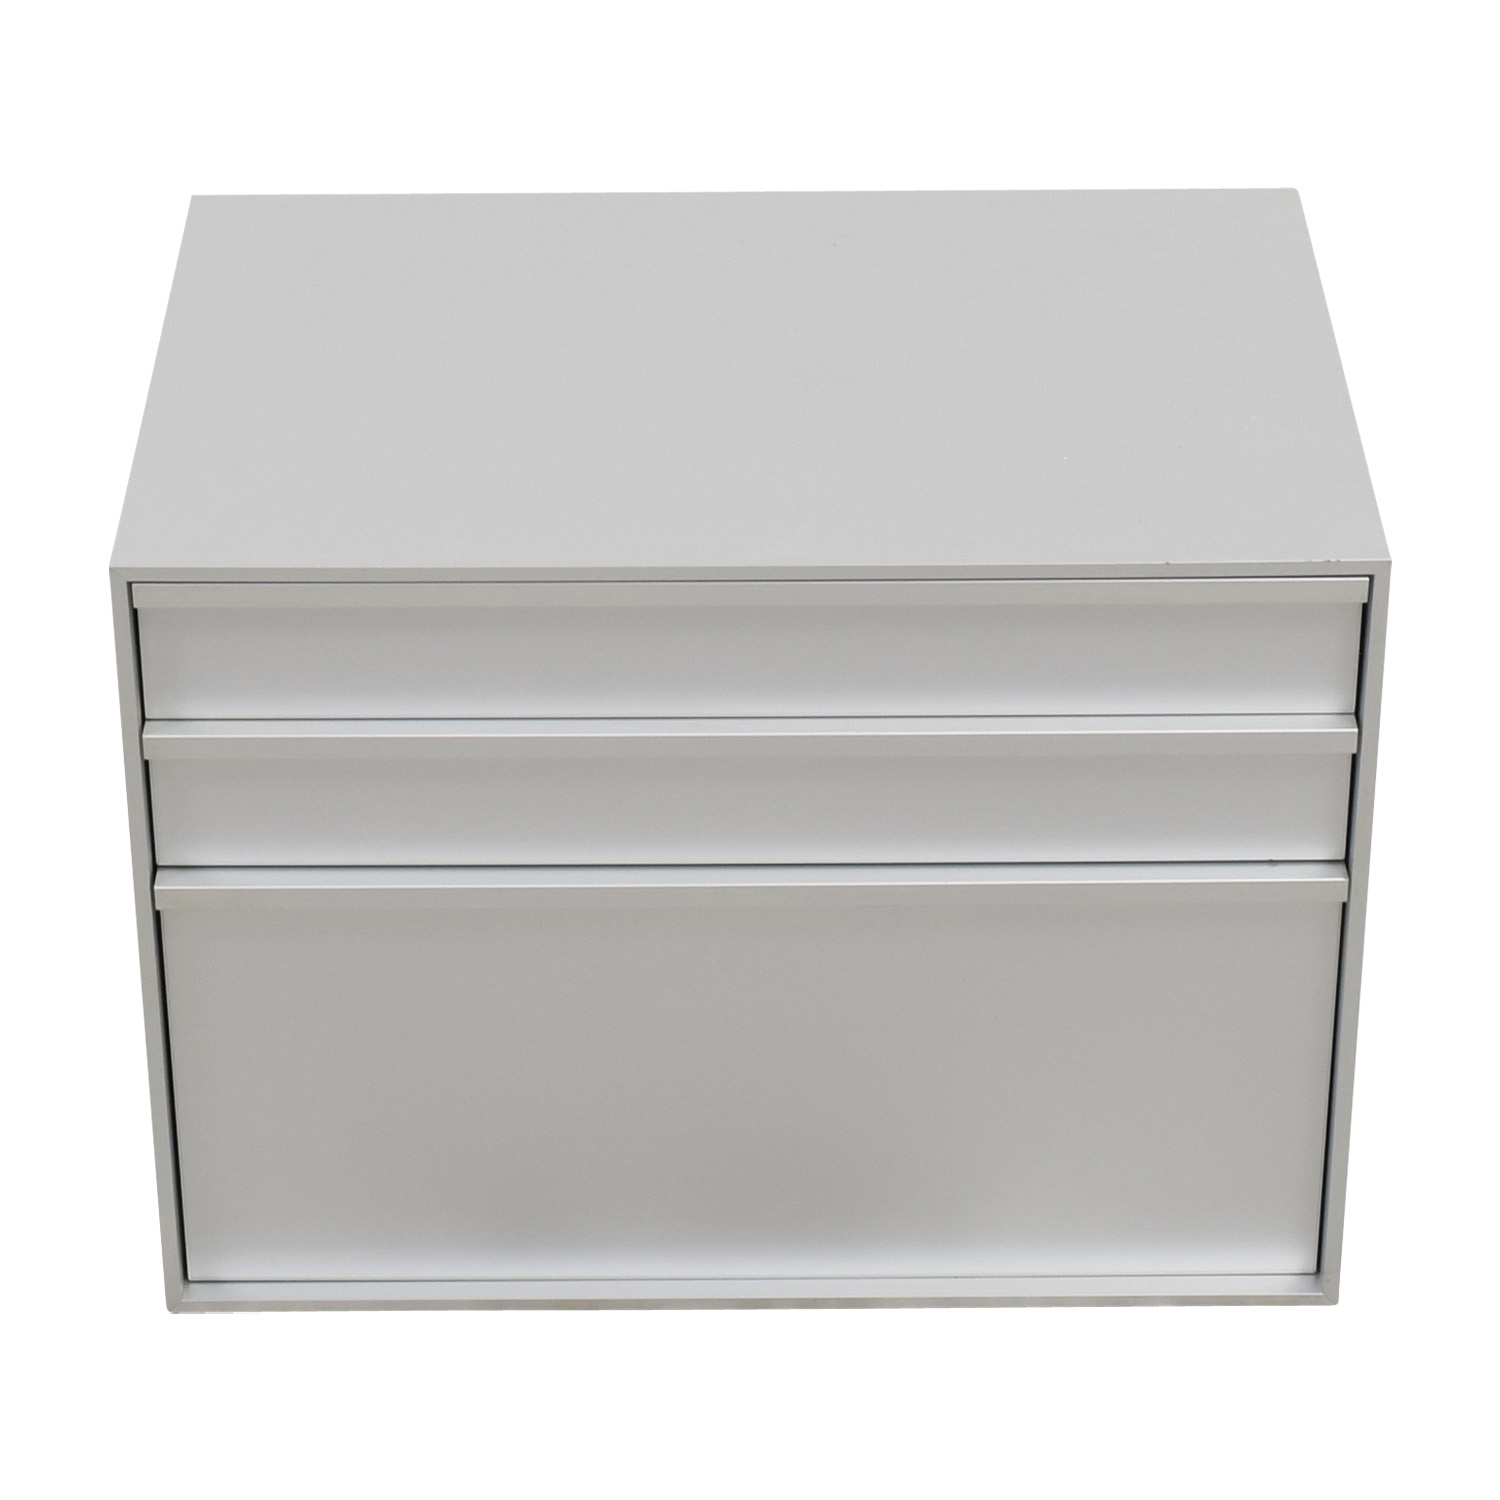 MDF Italia MDF Italia Three-Drawer Grey File Cabinet dimensions